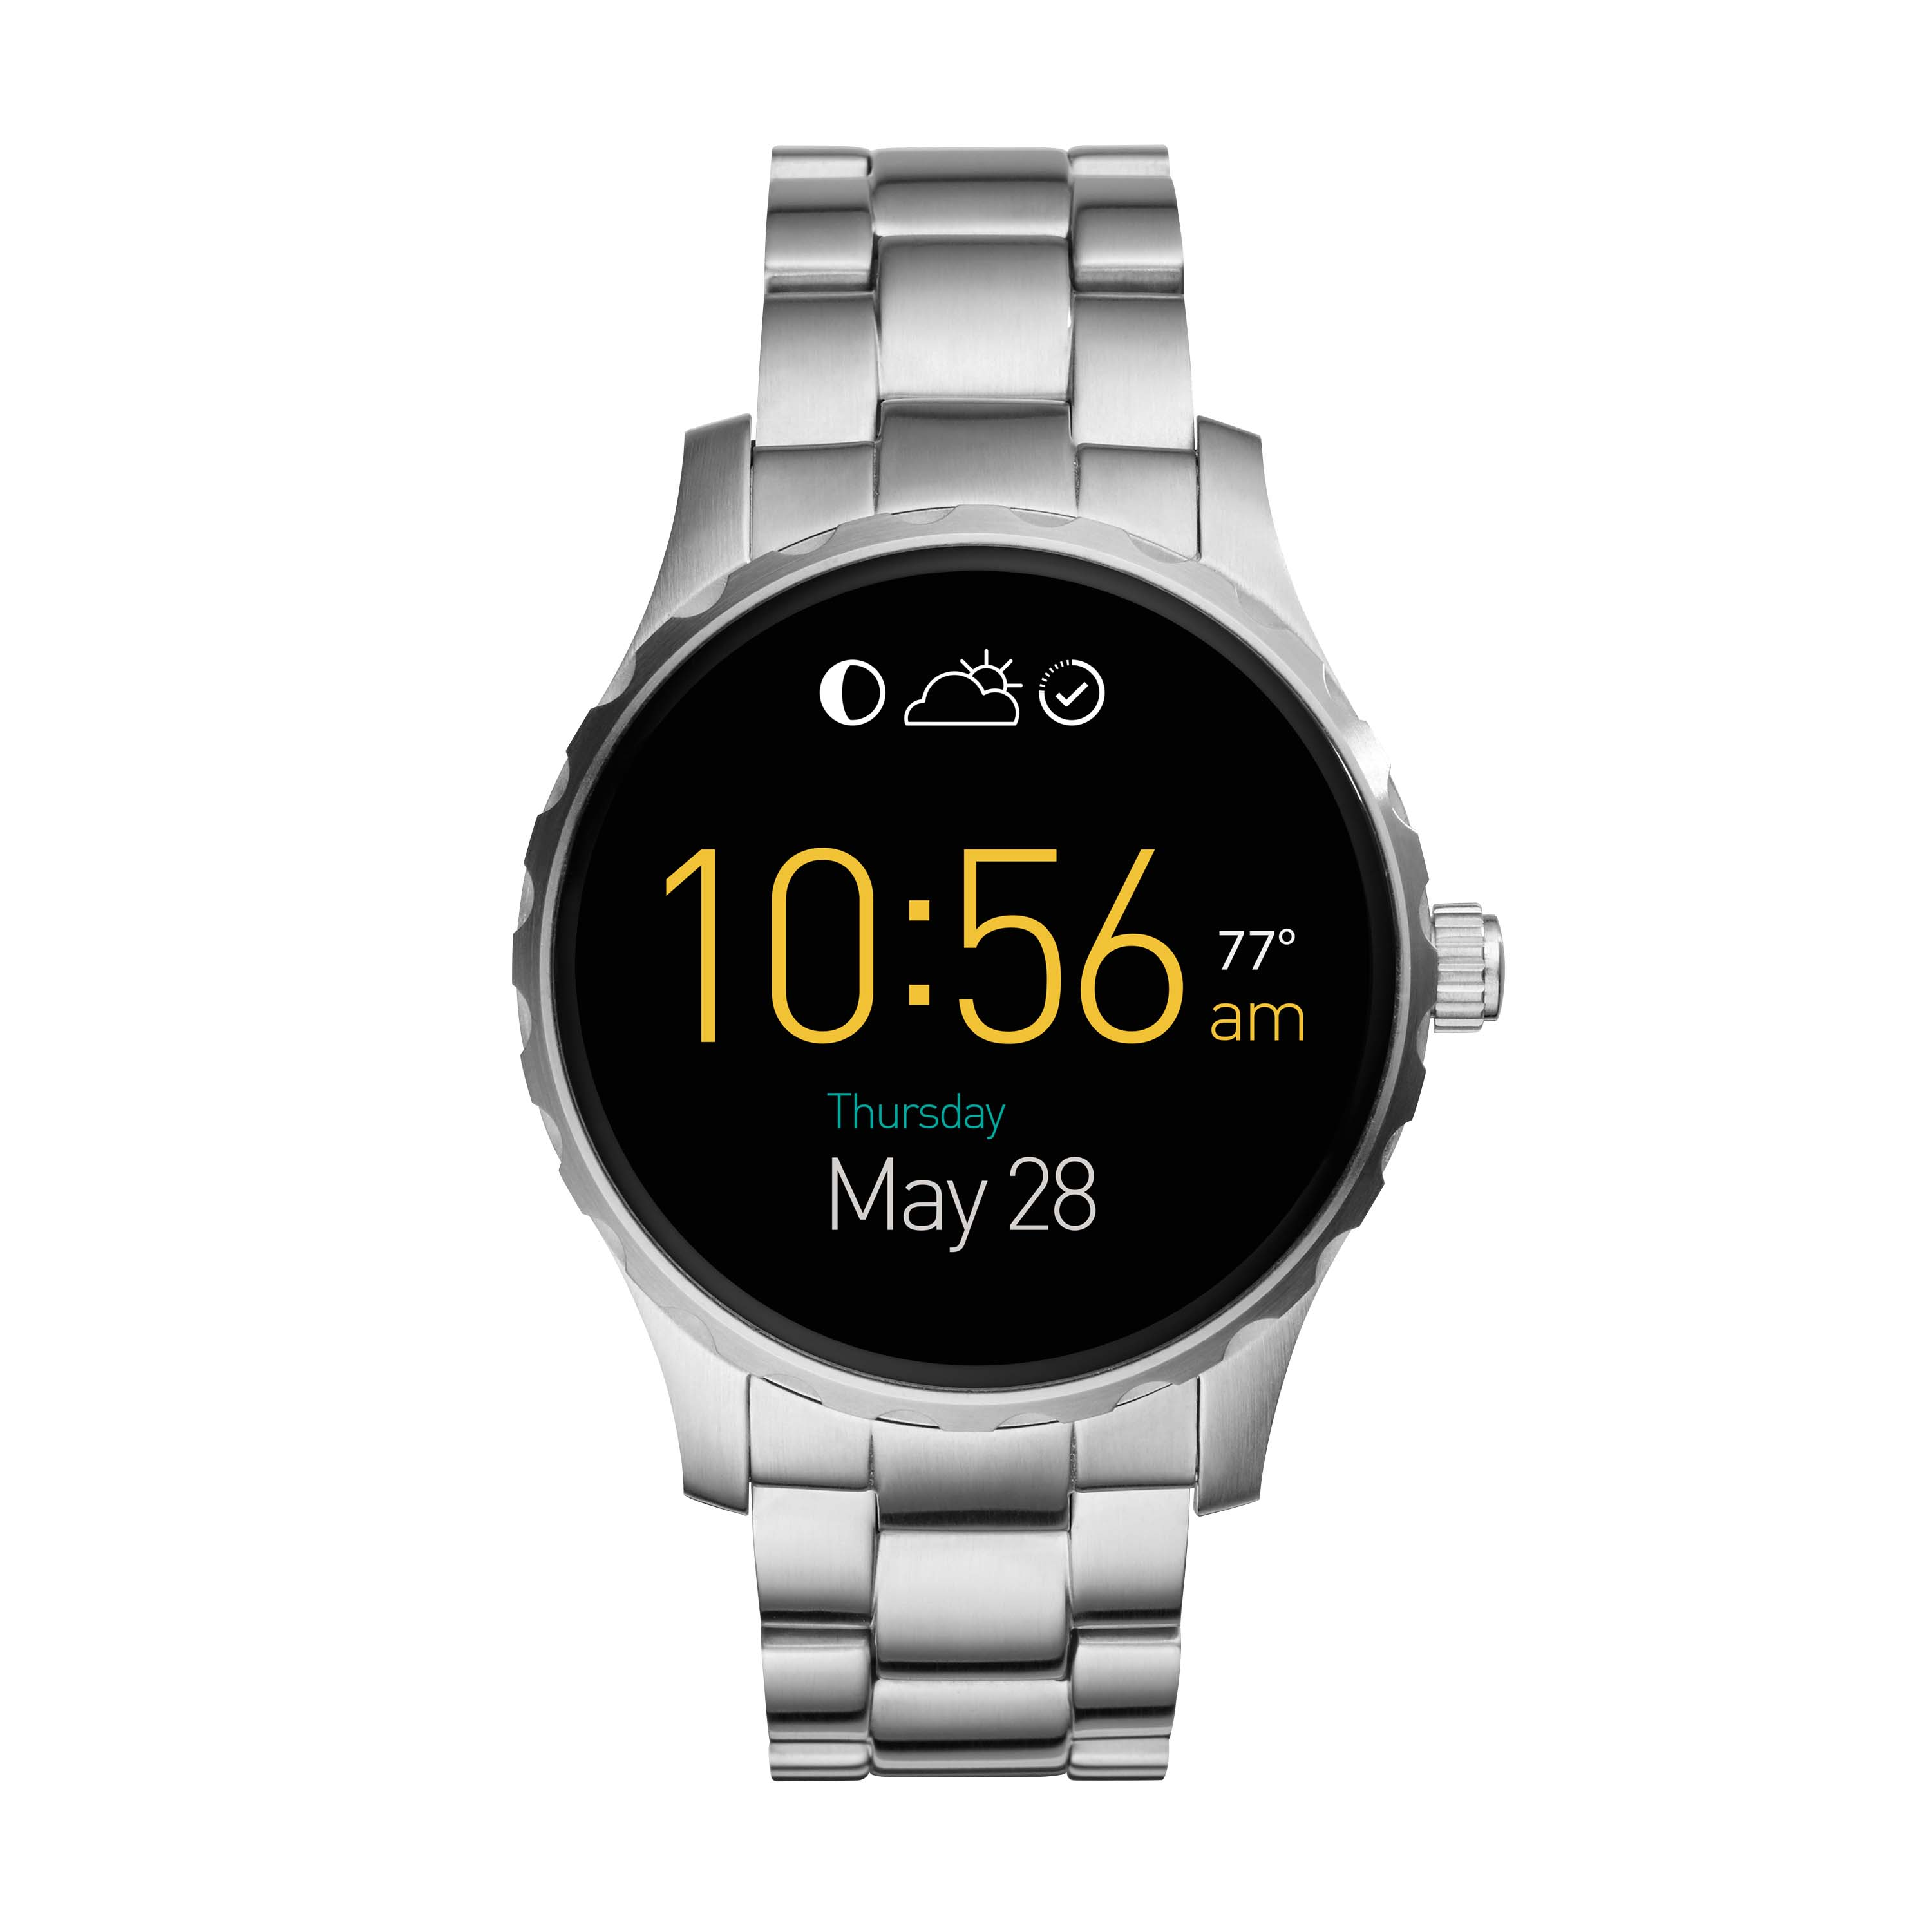 Hybrid Smartwatches from Fossil : The perfect watch ...